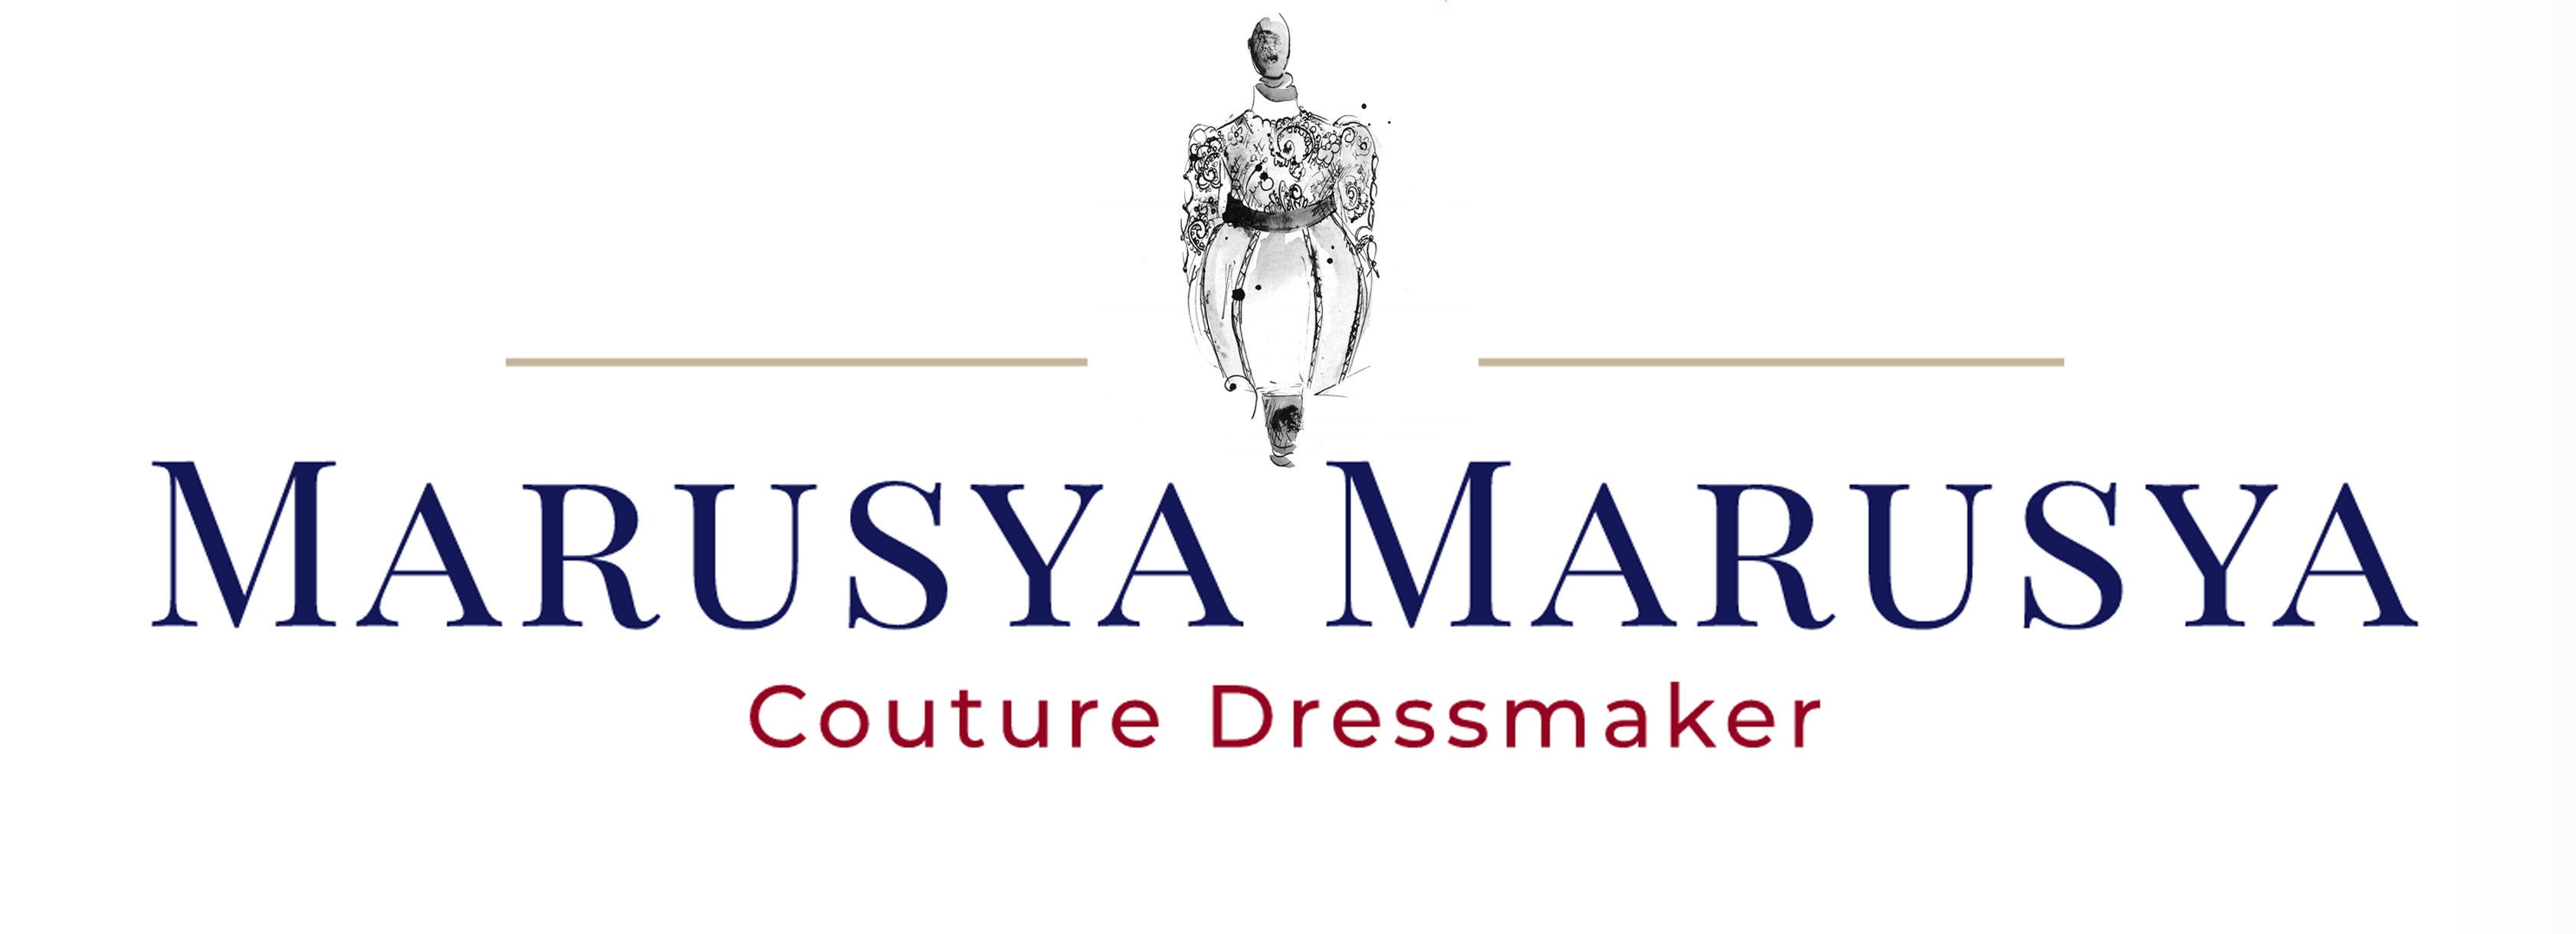 NYC couture dressmaker